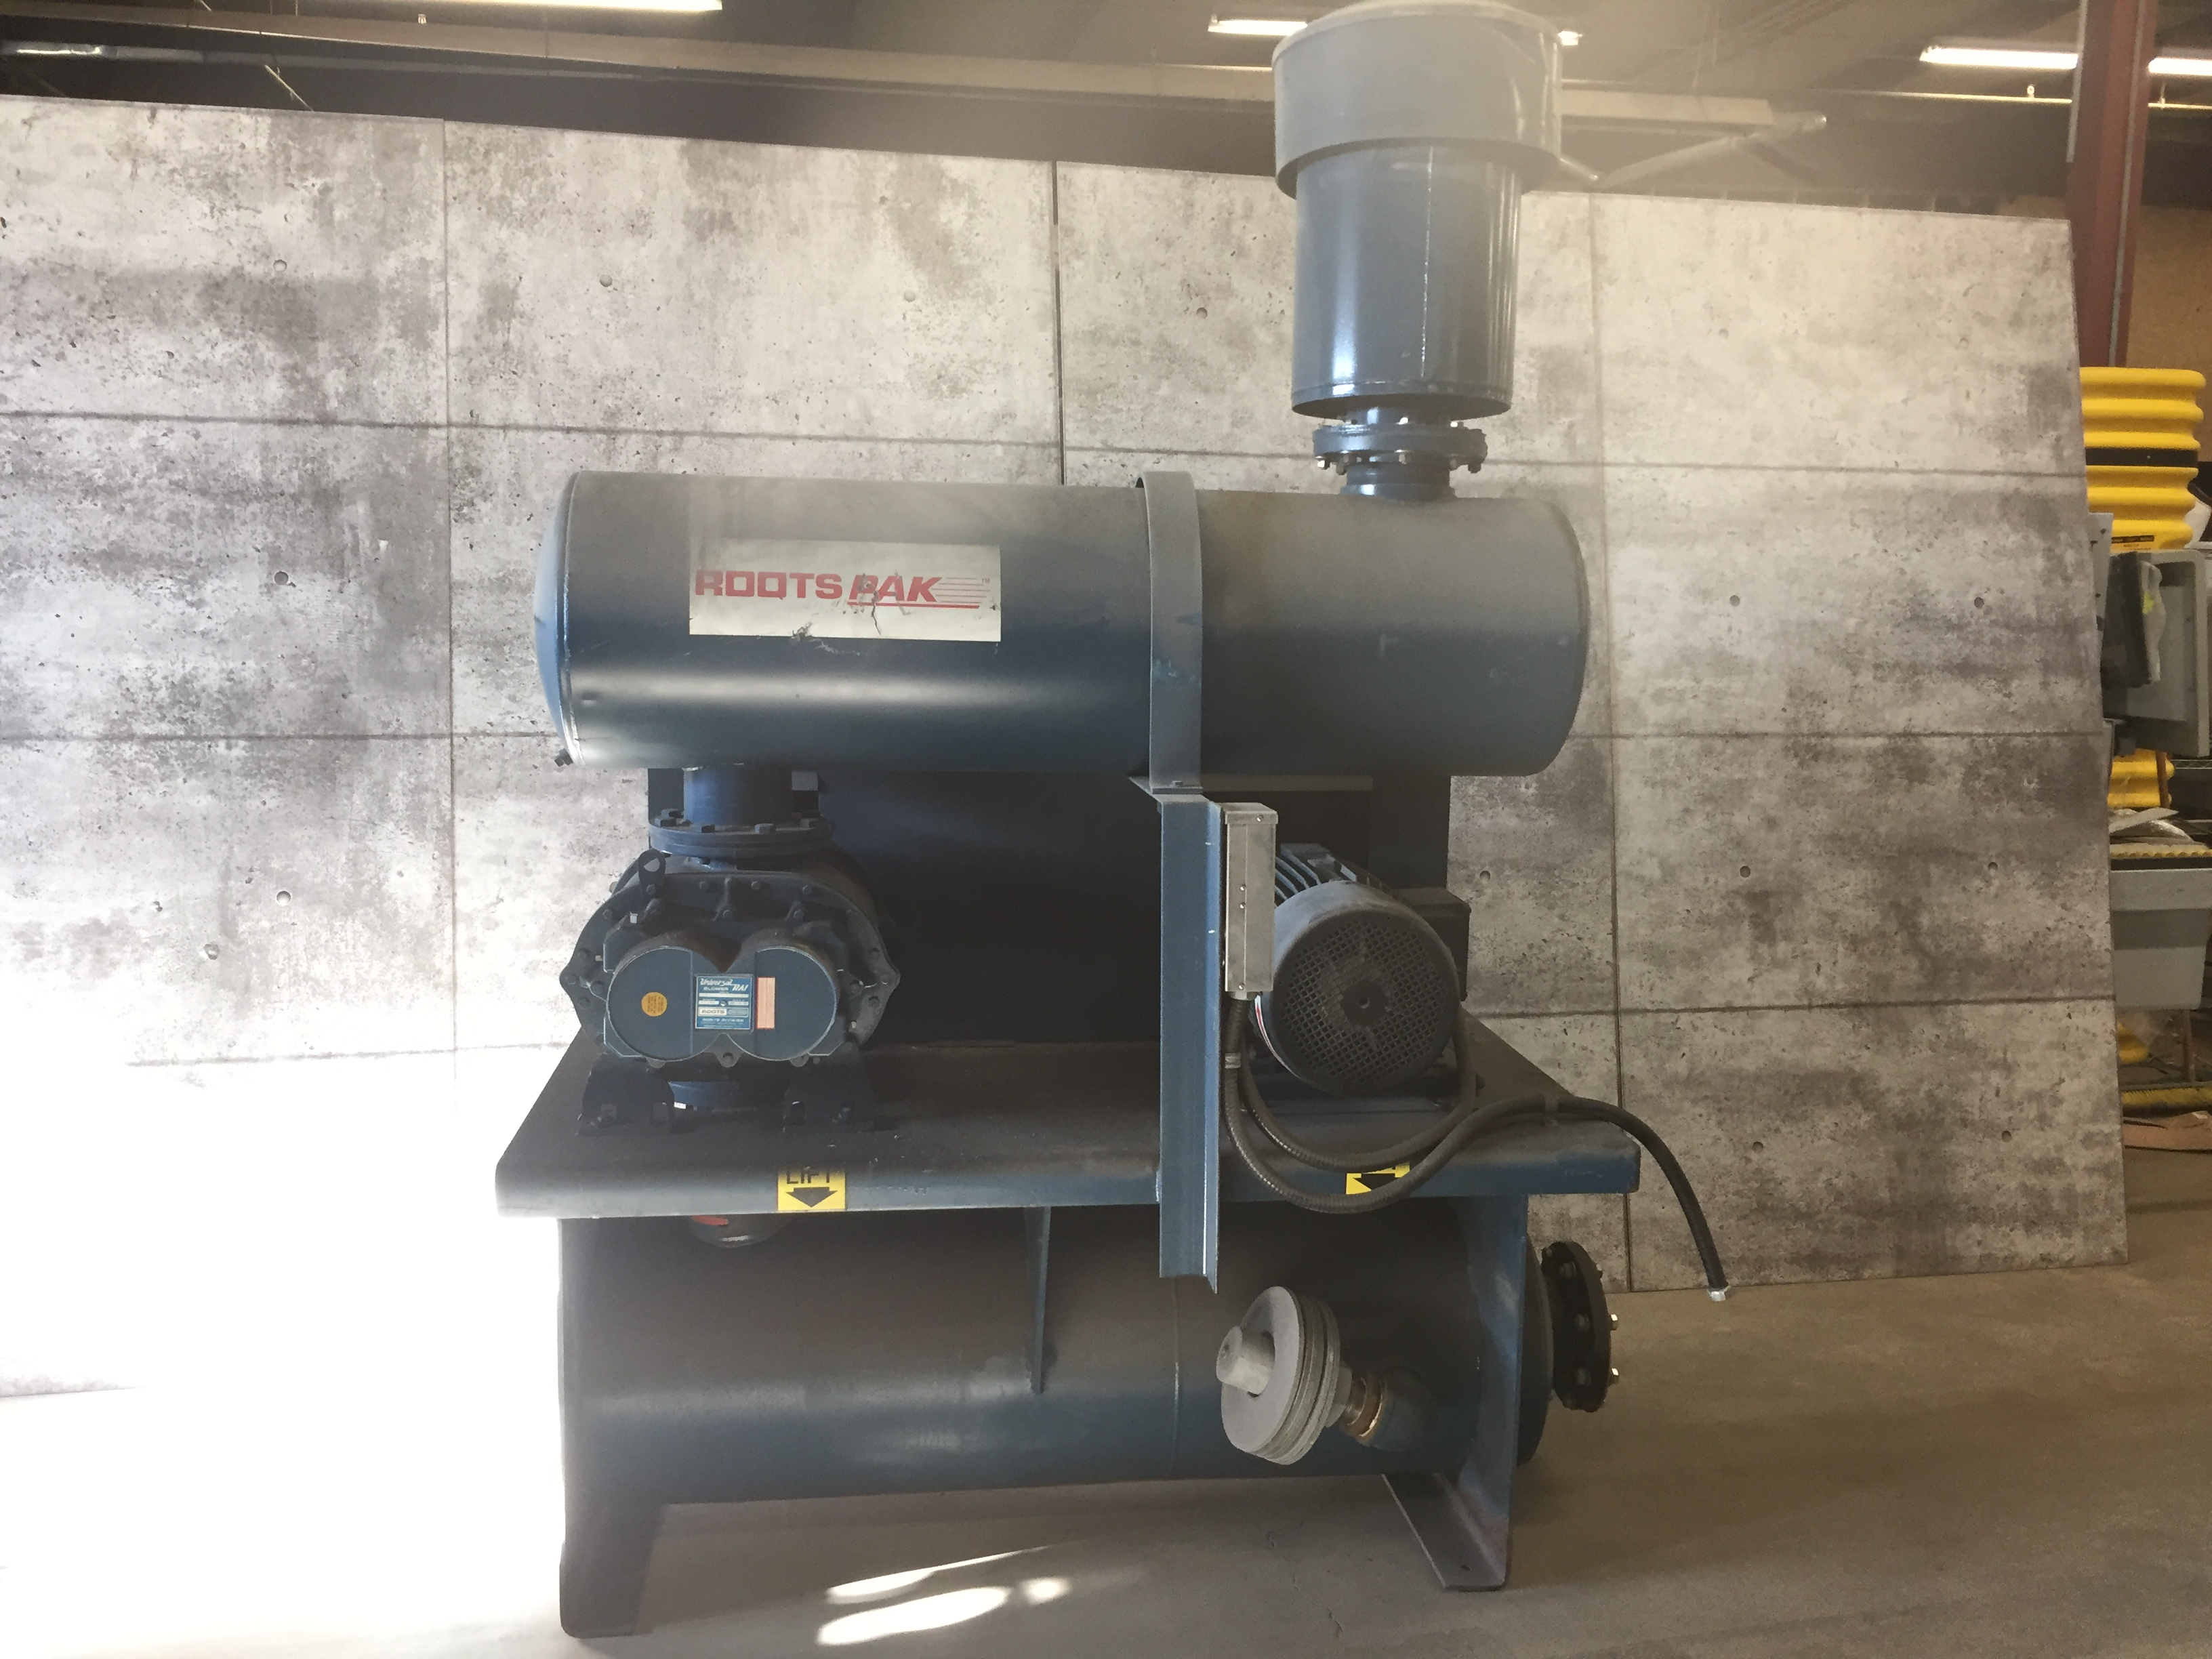 ROOTS HIGH PRESSURE PUMP/BLOWER - USED FOR PUMPING AIR INTO SILOS, ETC. MOVING PRODUCT - SERIAL # - Image 2 of 4